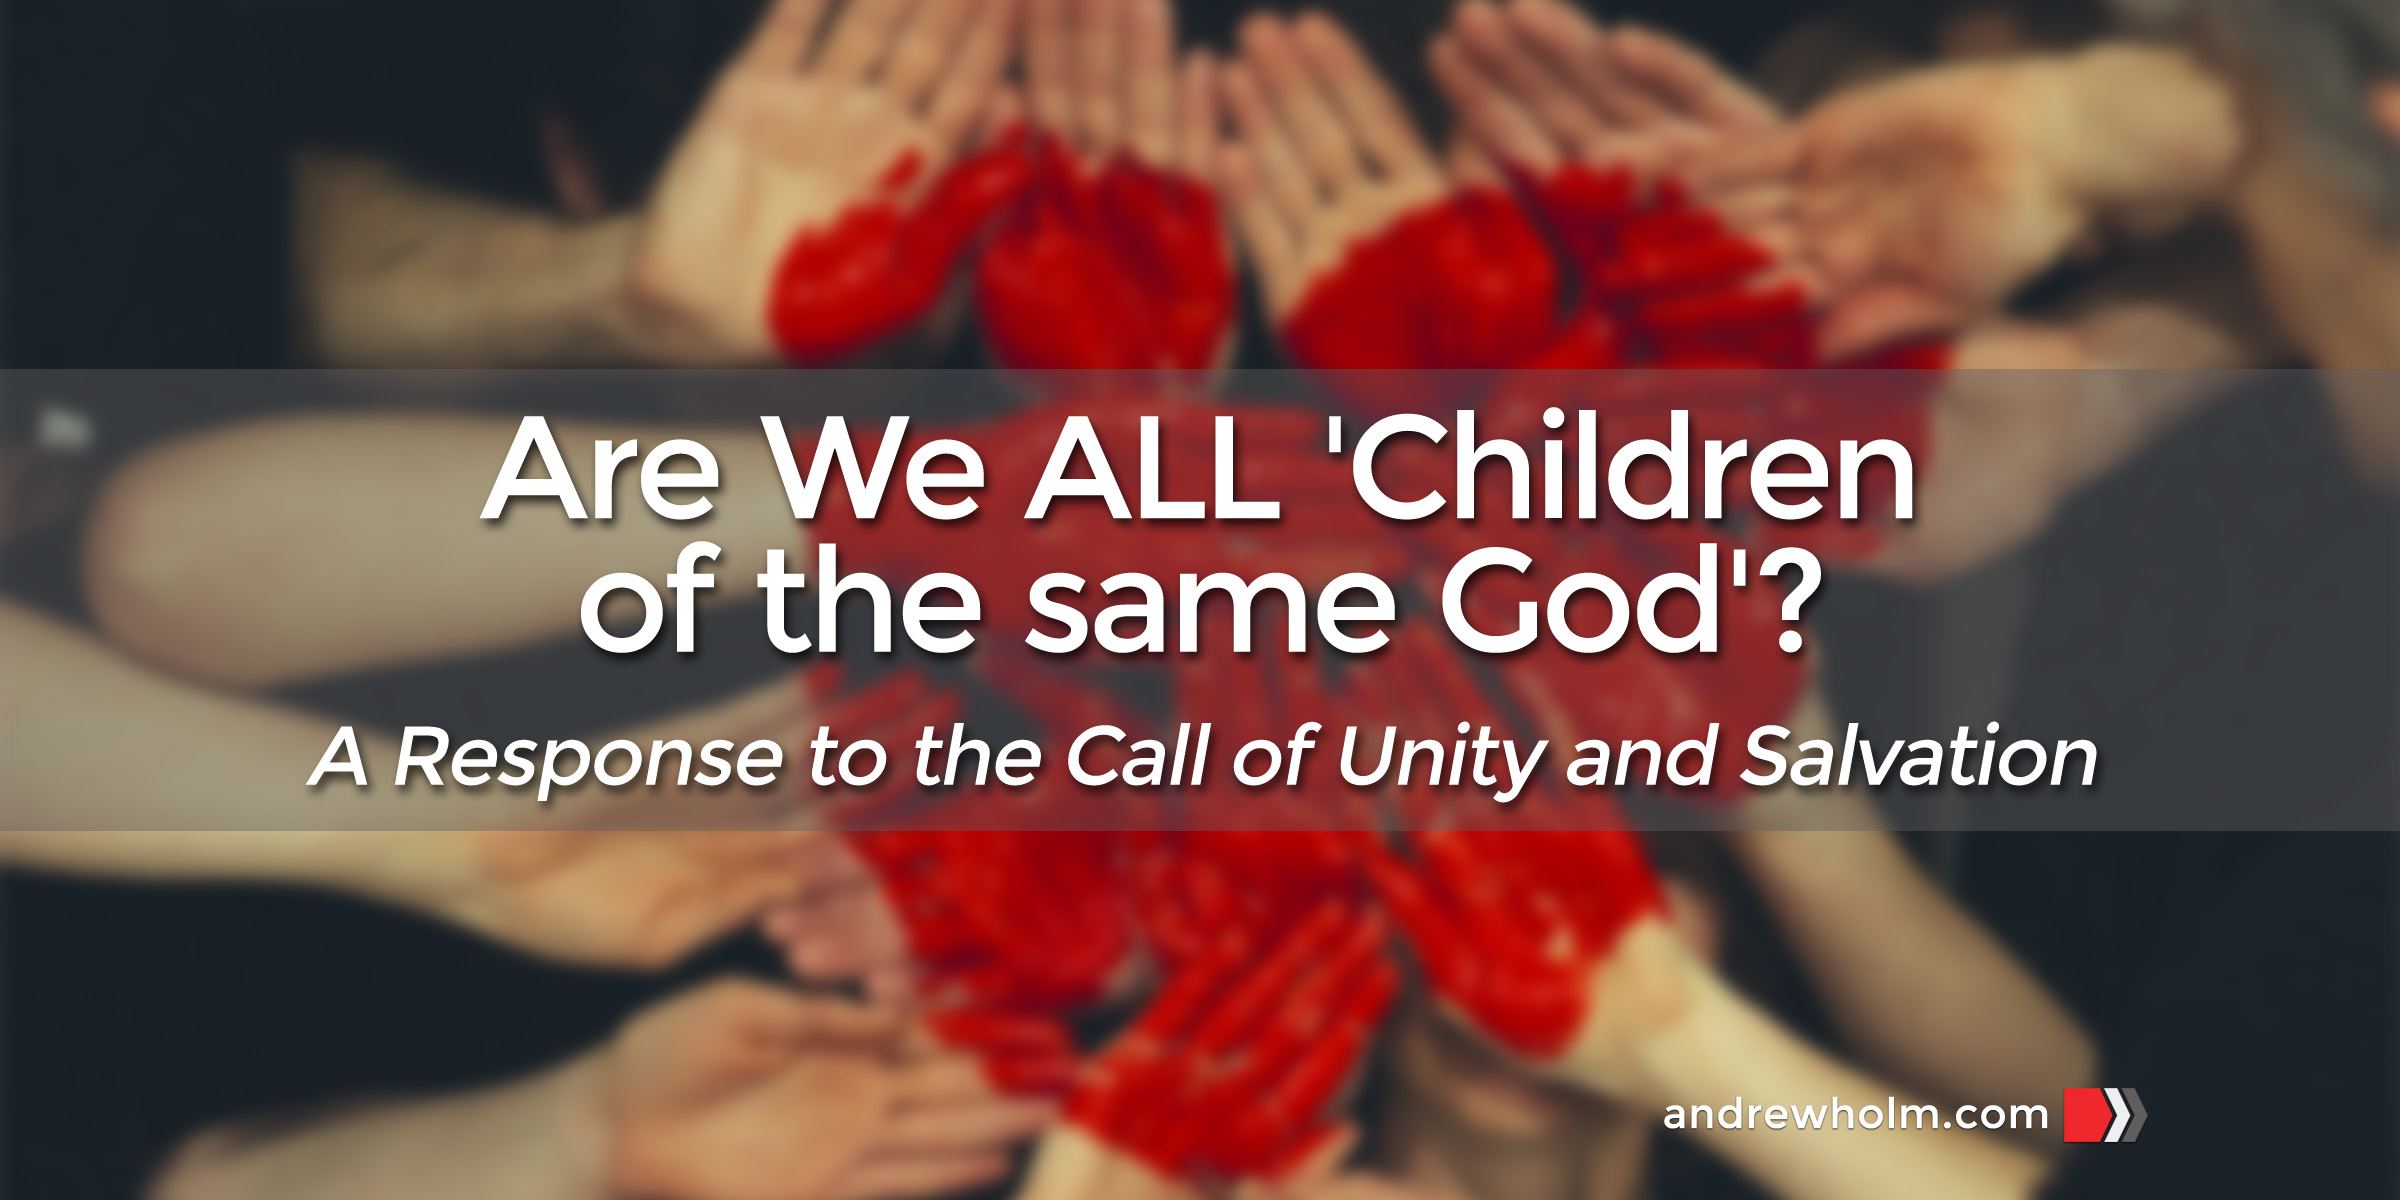 Are We ALL 'Children of the same God'?